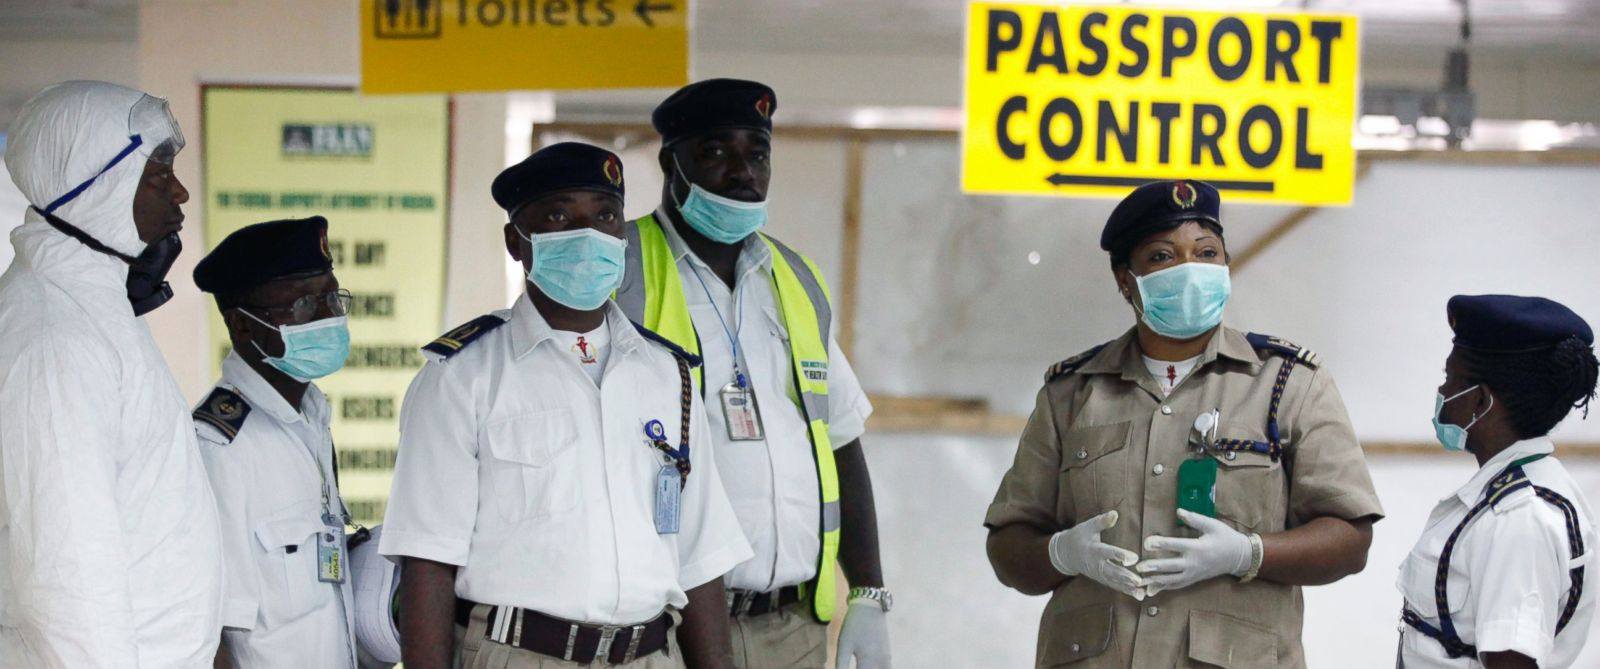 PHOTO: Nigeria health officials wait to screen passengers at the arrival hall of Murtala Muhammed International Airport in Lagos, Nigeria, Aug. 4, 2014.